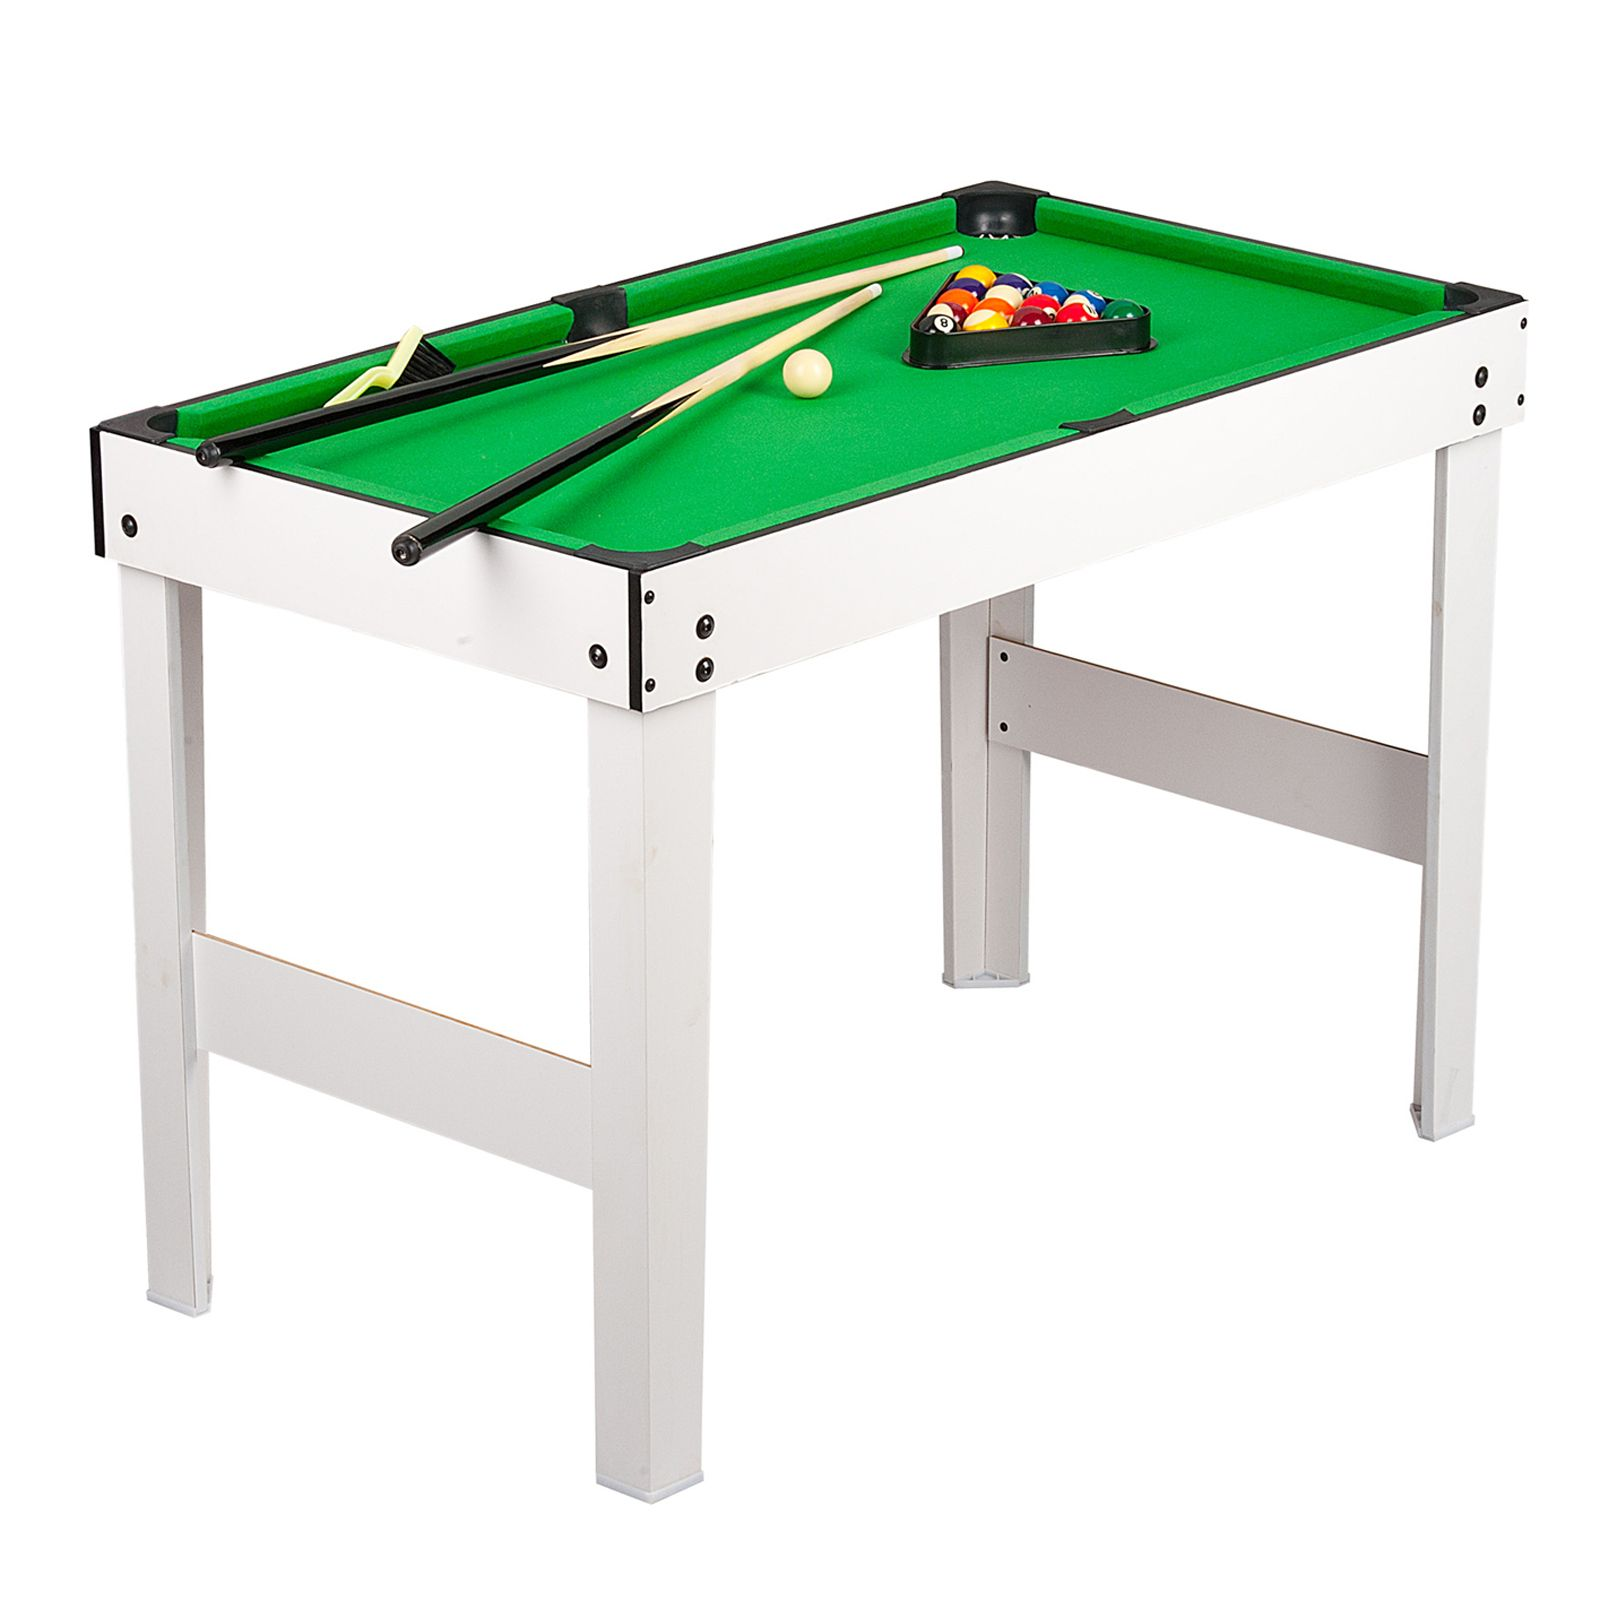 how to play pool table pdf